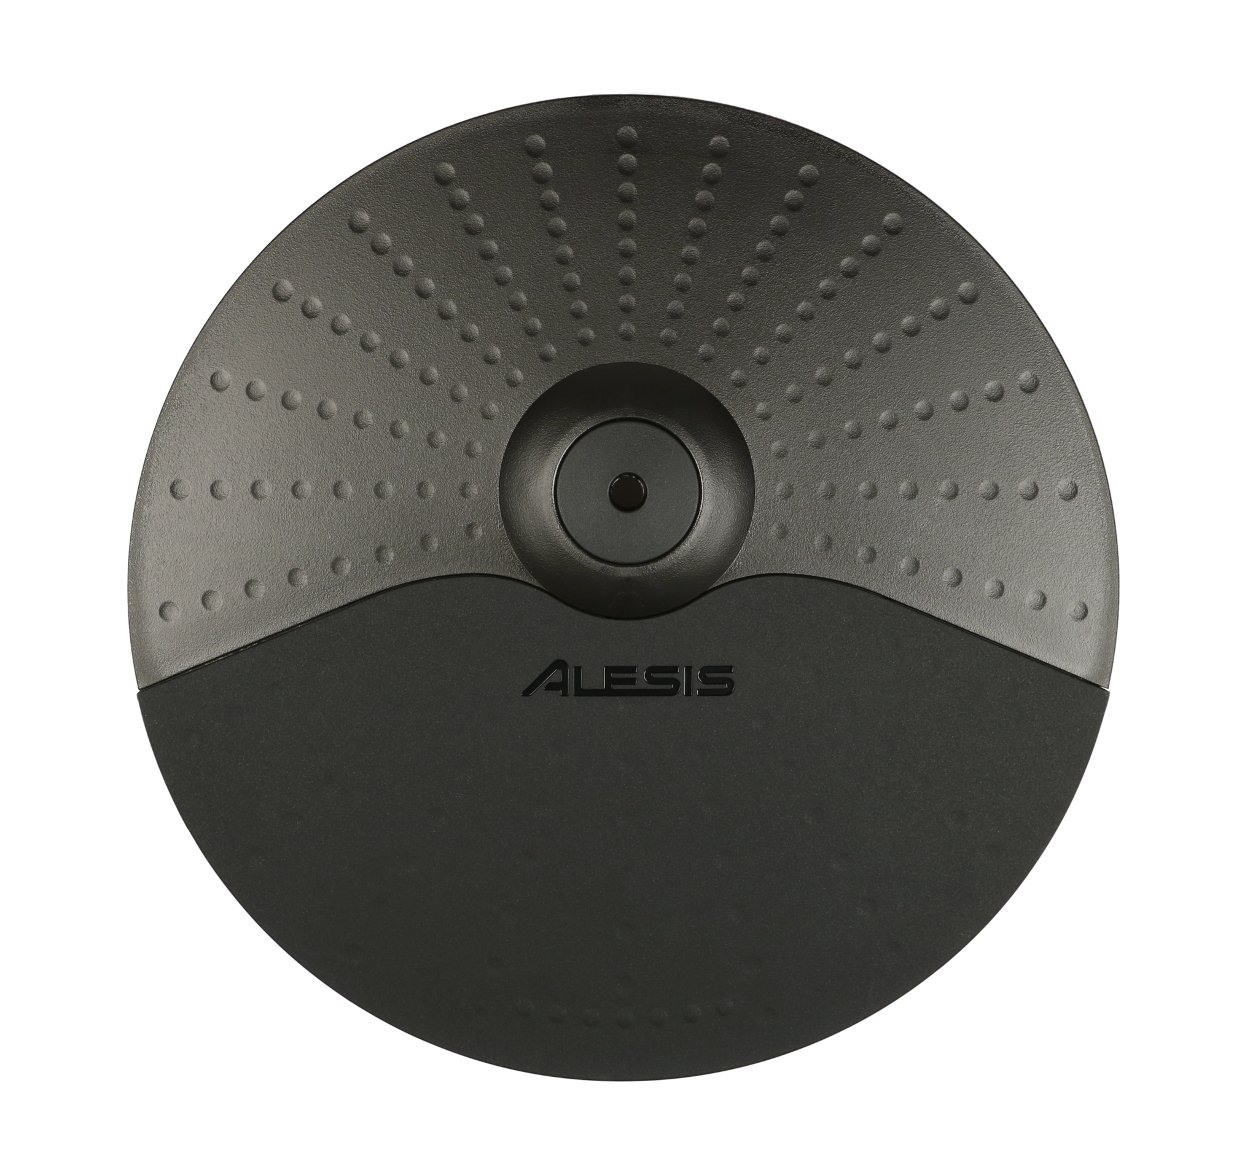 """Alesis 102150143-A  10"""" Cymbal with Choke for DM7X and Forge 102150143-A"""